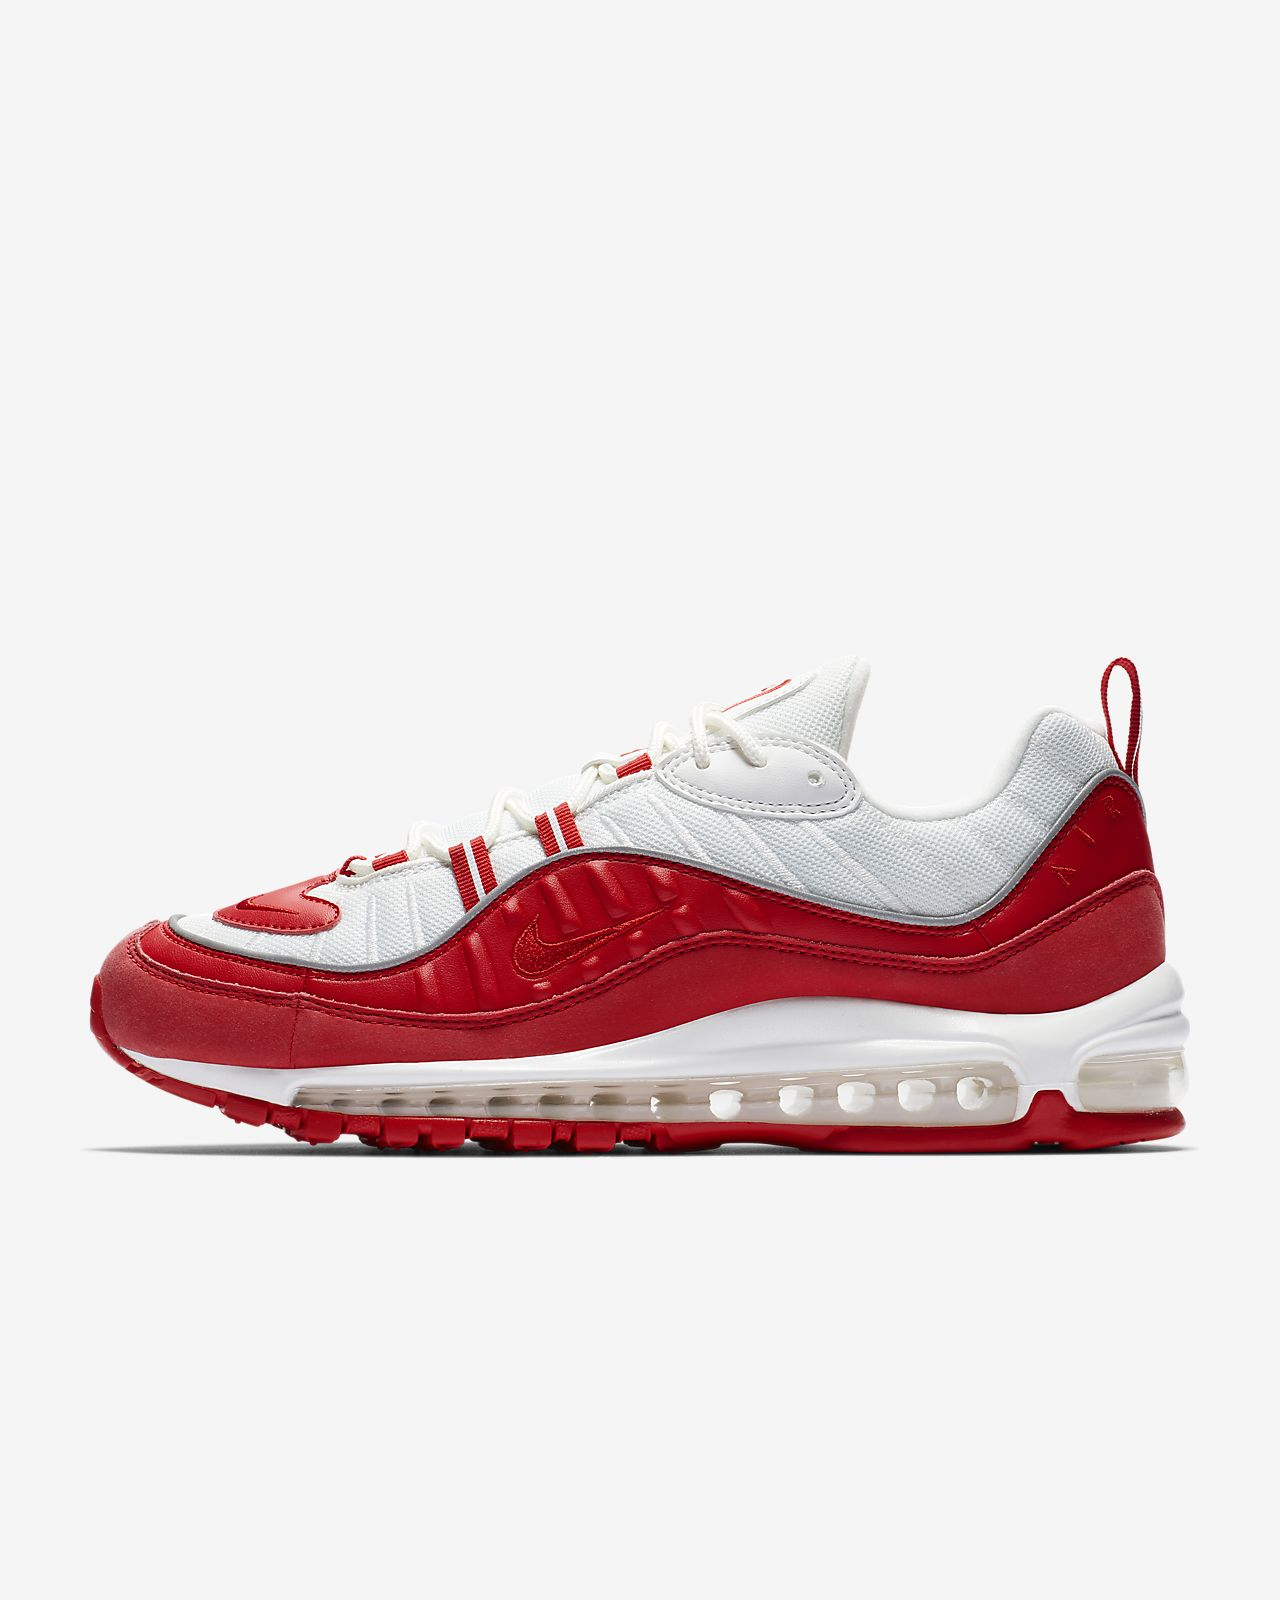 best service 41e8d b20a3 ... Nike Air Max 98 Mens Shoe